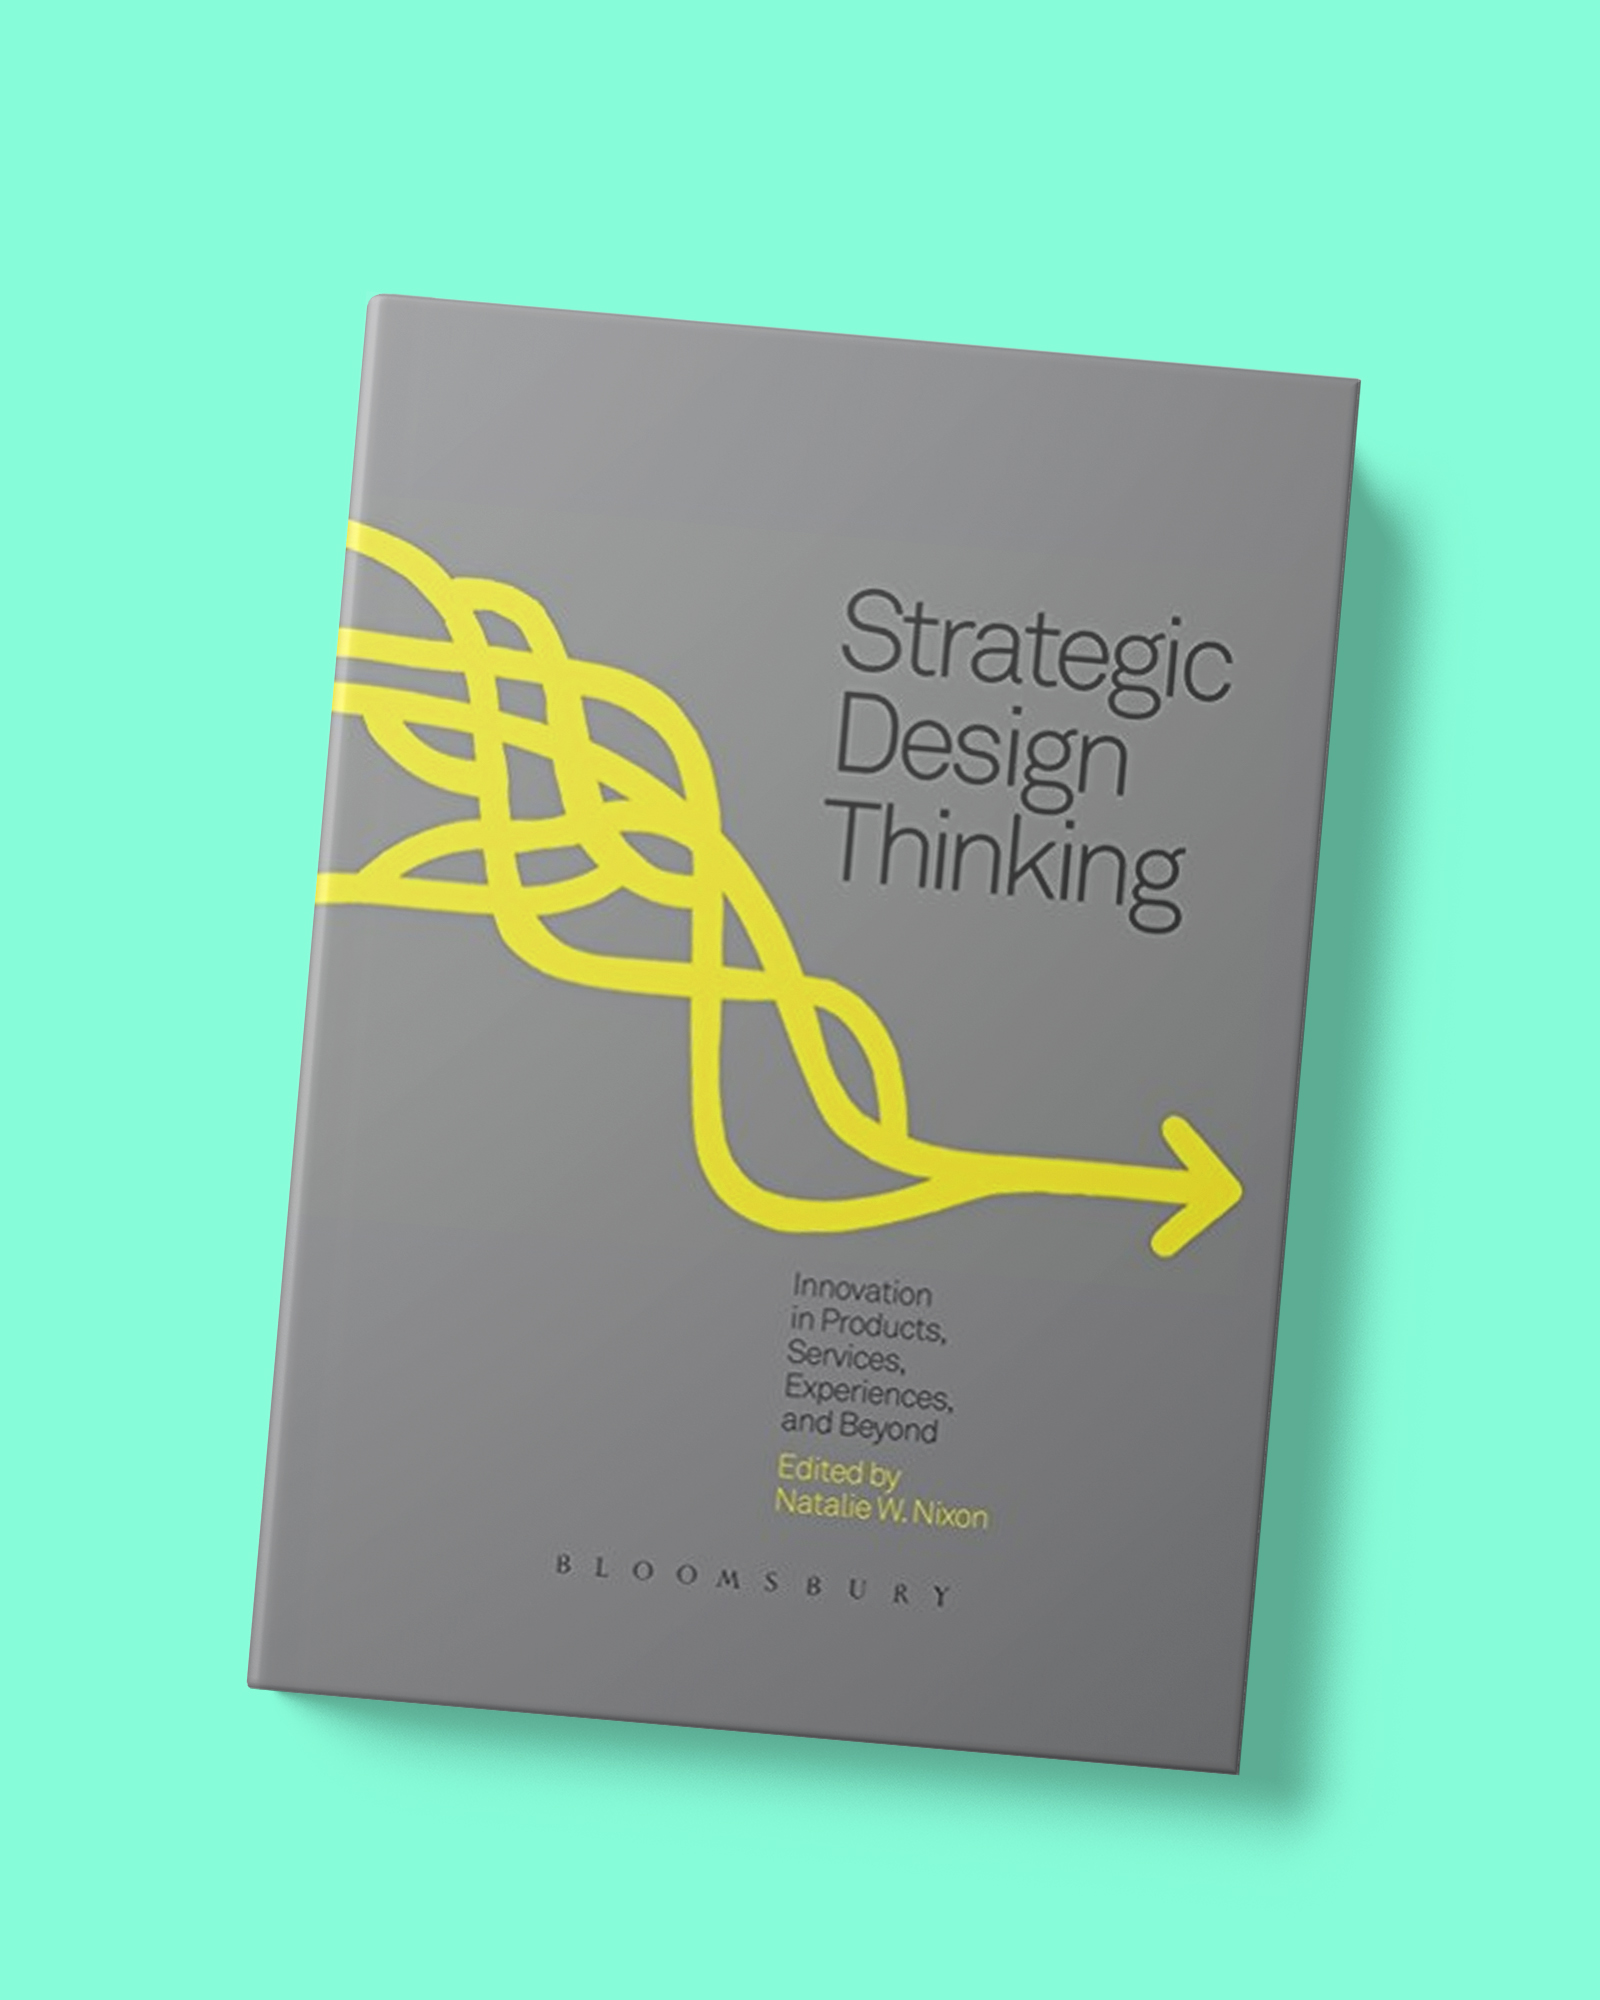 TDC | Behavior design - Book_Strategic Design Thinking- Innovation in Products, Services, Experiences and Beyond